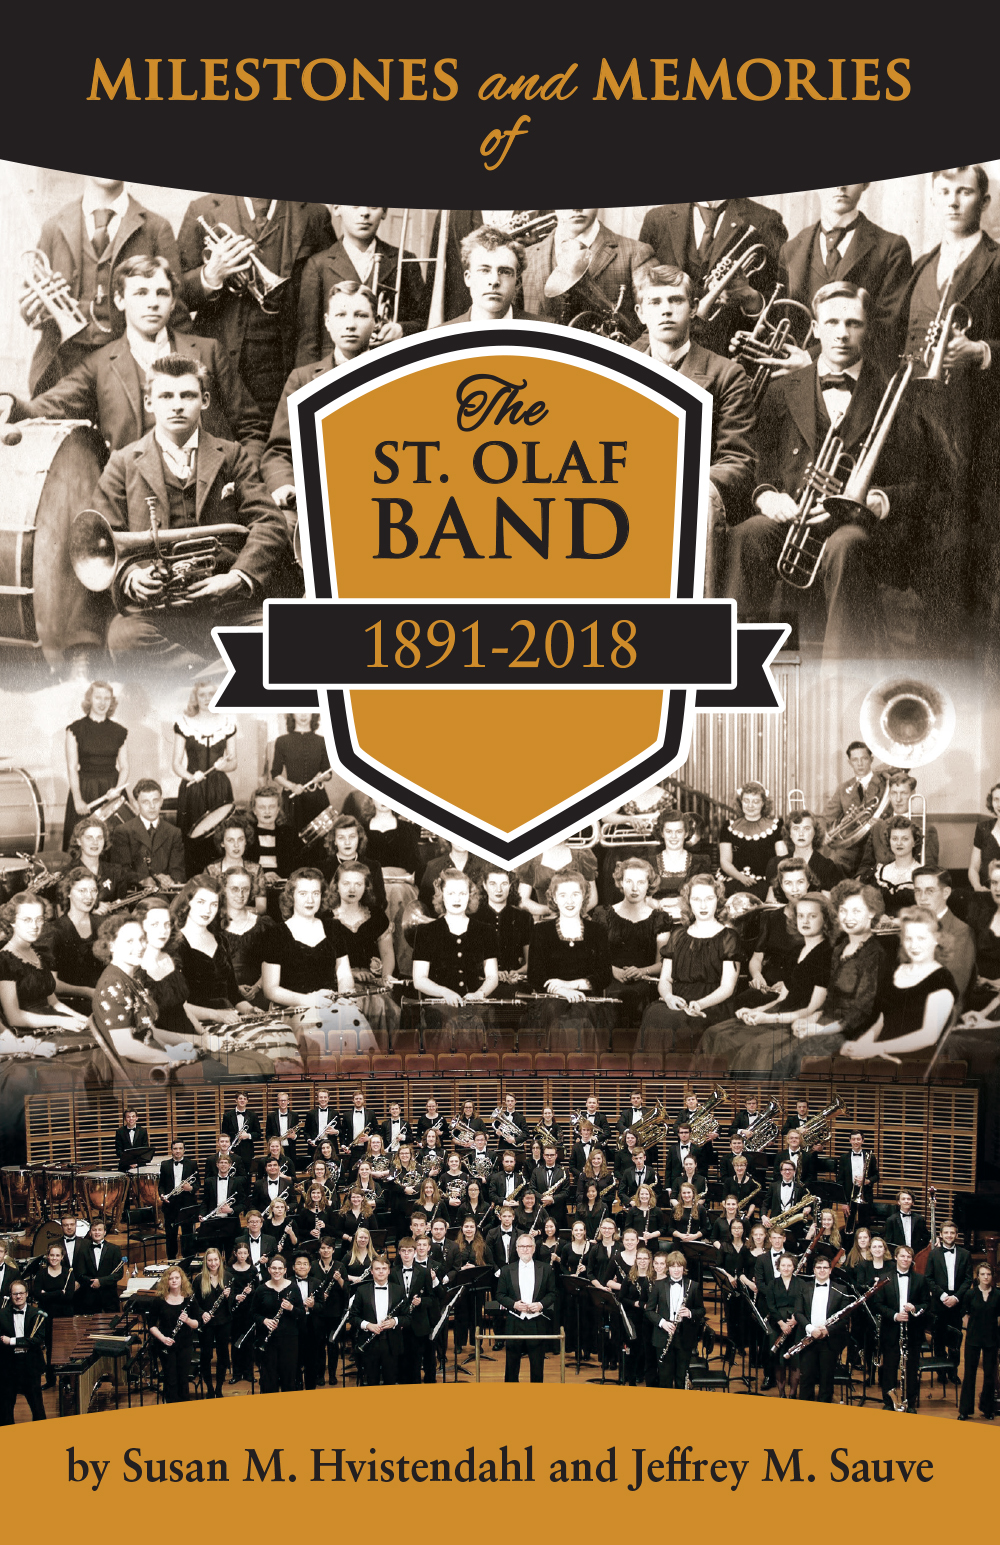 Milestones and Memories of the St. Olaf Band